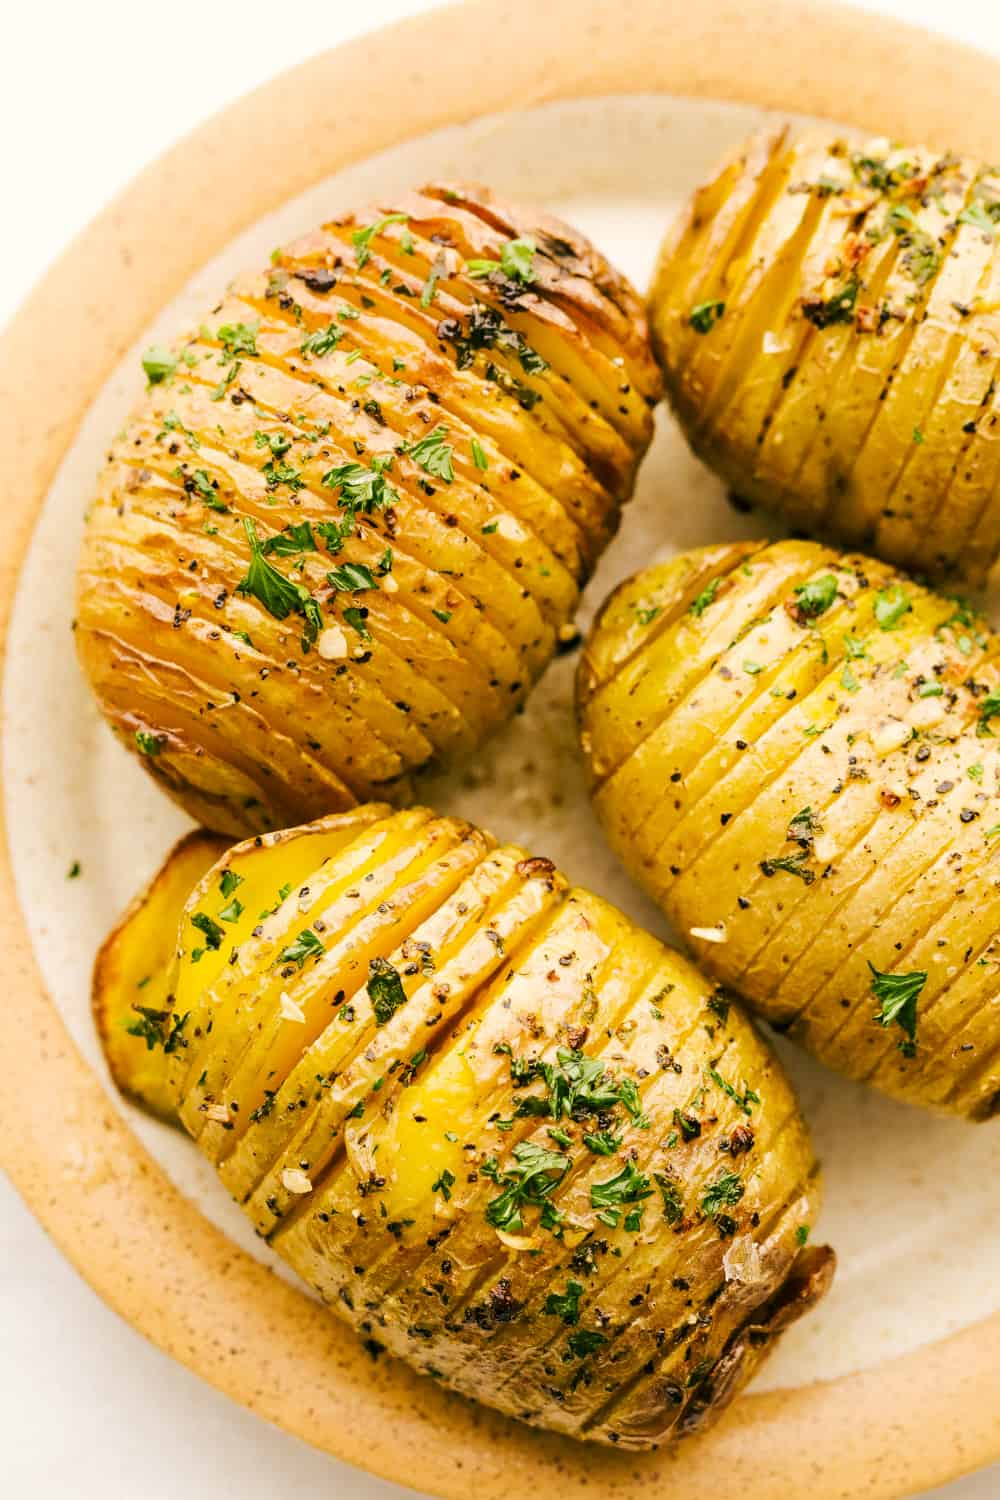 Crispy air fryer hasselback potatoes on a plate.